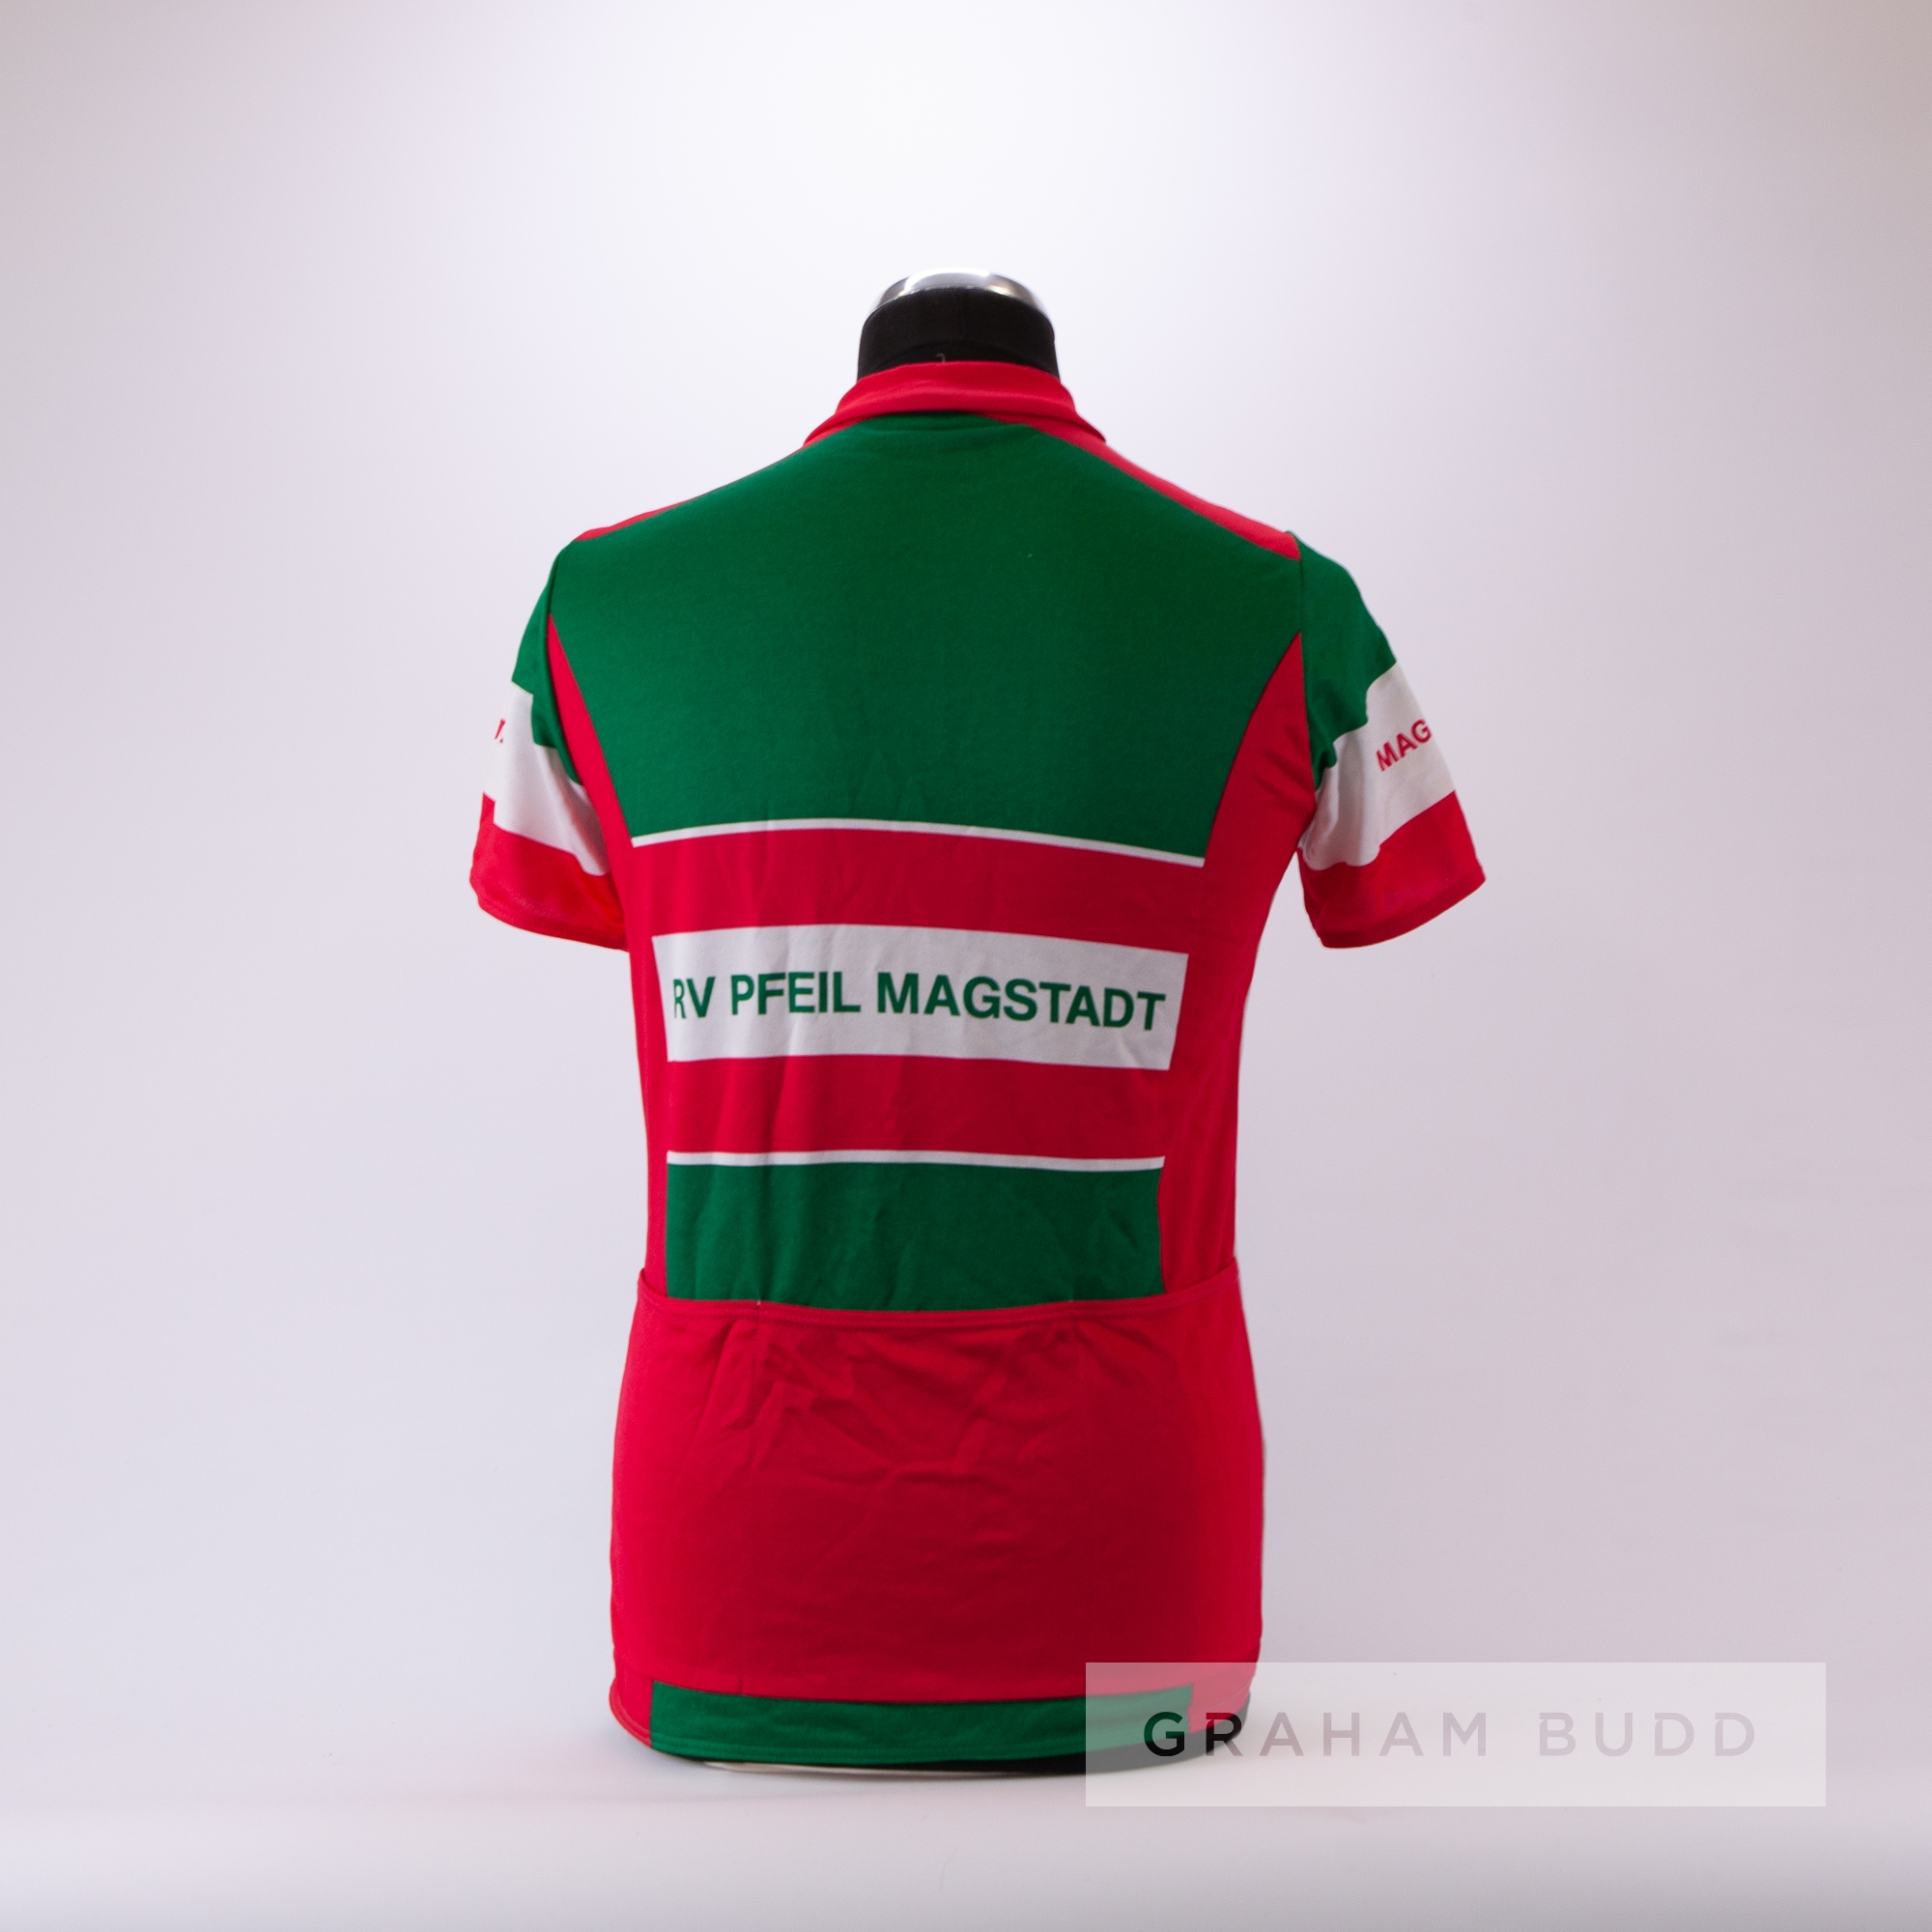 2005 green, white and pink German Gebert Sport RV Pfeil Magstadt Cycling race jersey, scarce, - Image 4 of 4